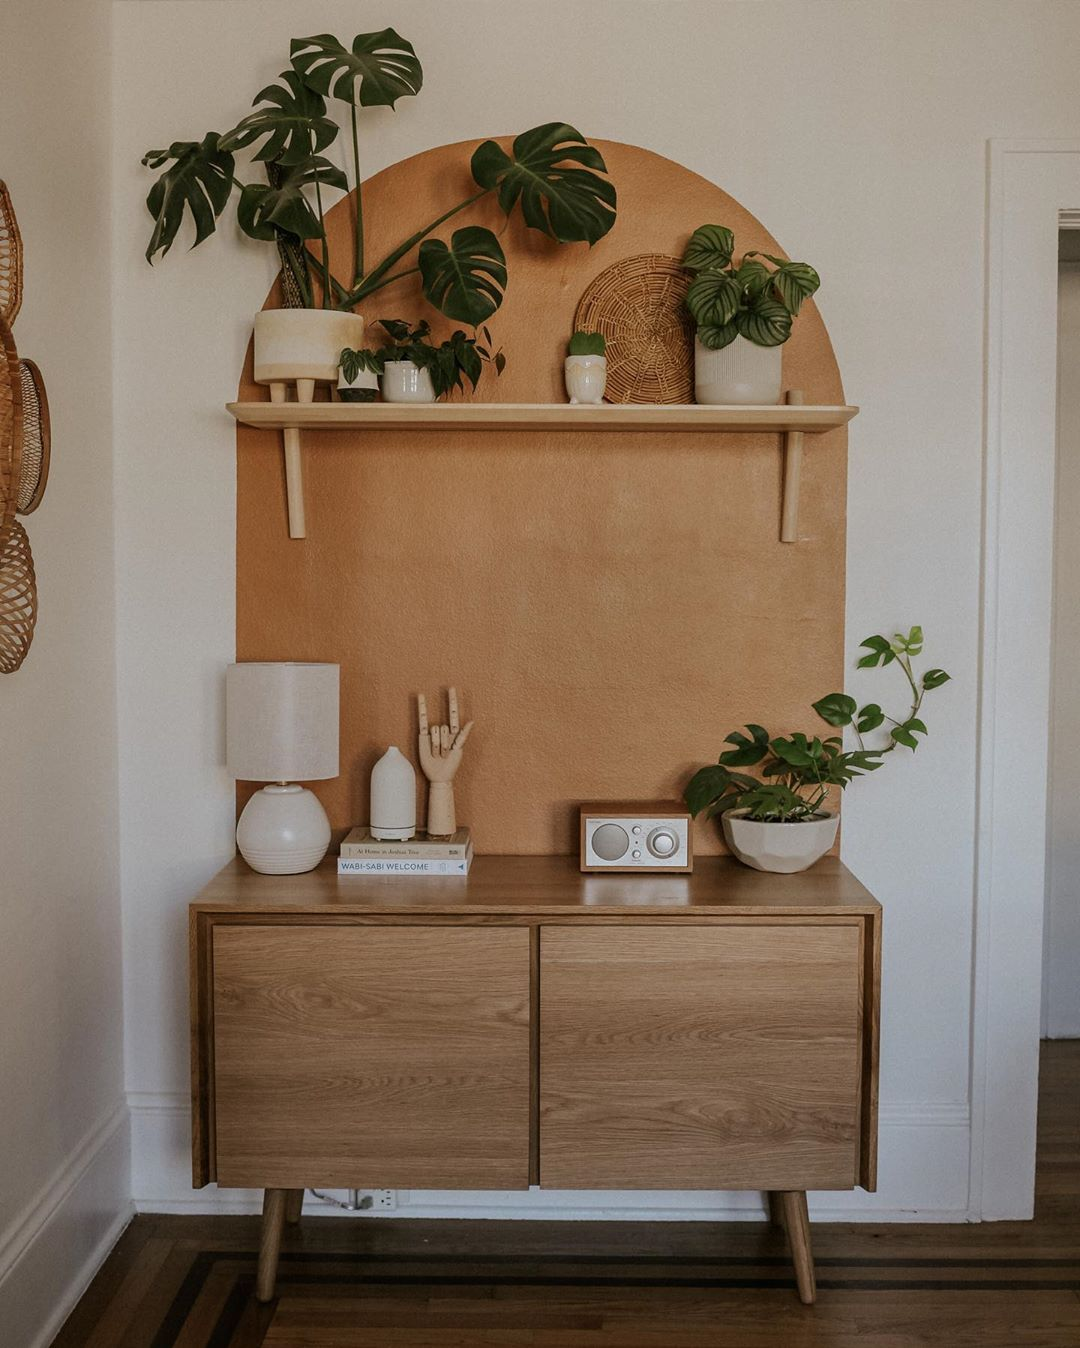 "Carla Natalia Thompson on Instagram: ""#ad Truly in love with my new piece of furniture from @article, the #senosideboard!  I had so much fun creating this space to showcase my…"""